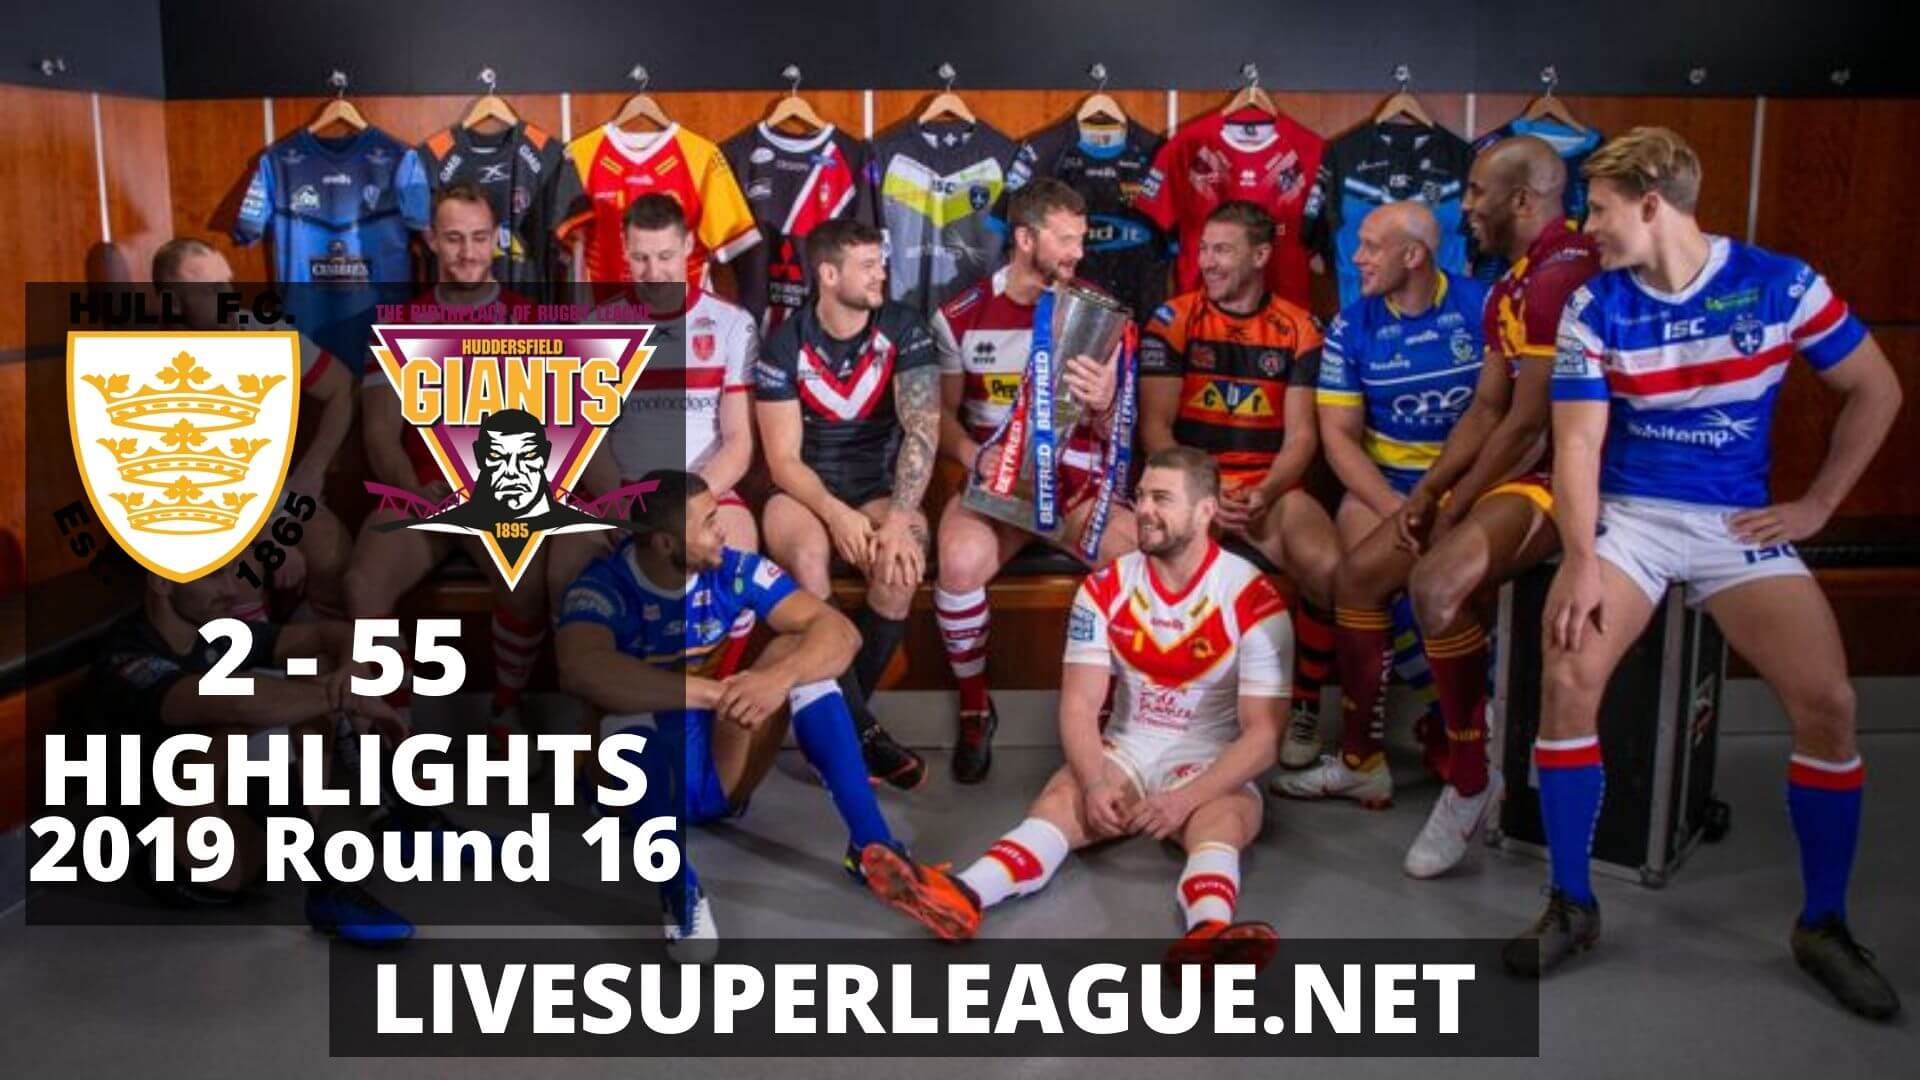 Hull F.C Vs Huddersfield Giants Highlights 2019 Round 16